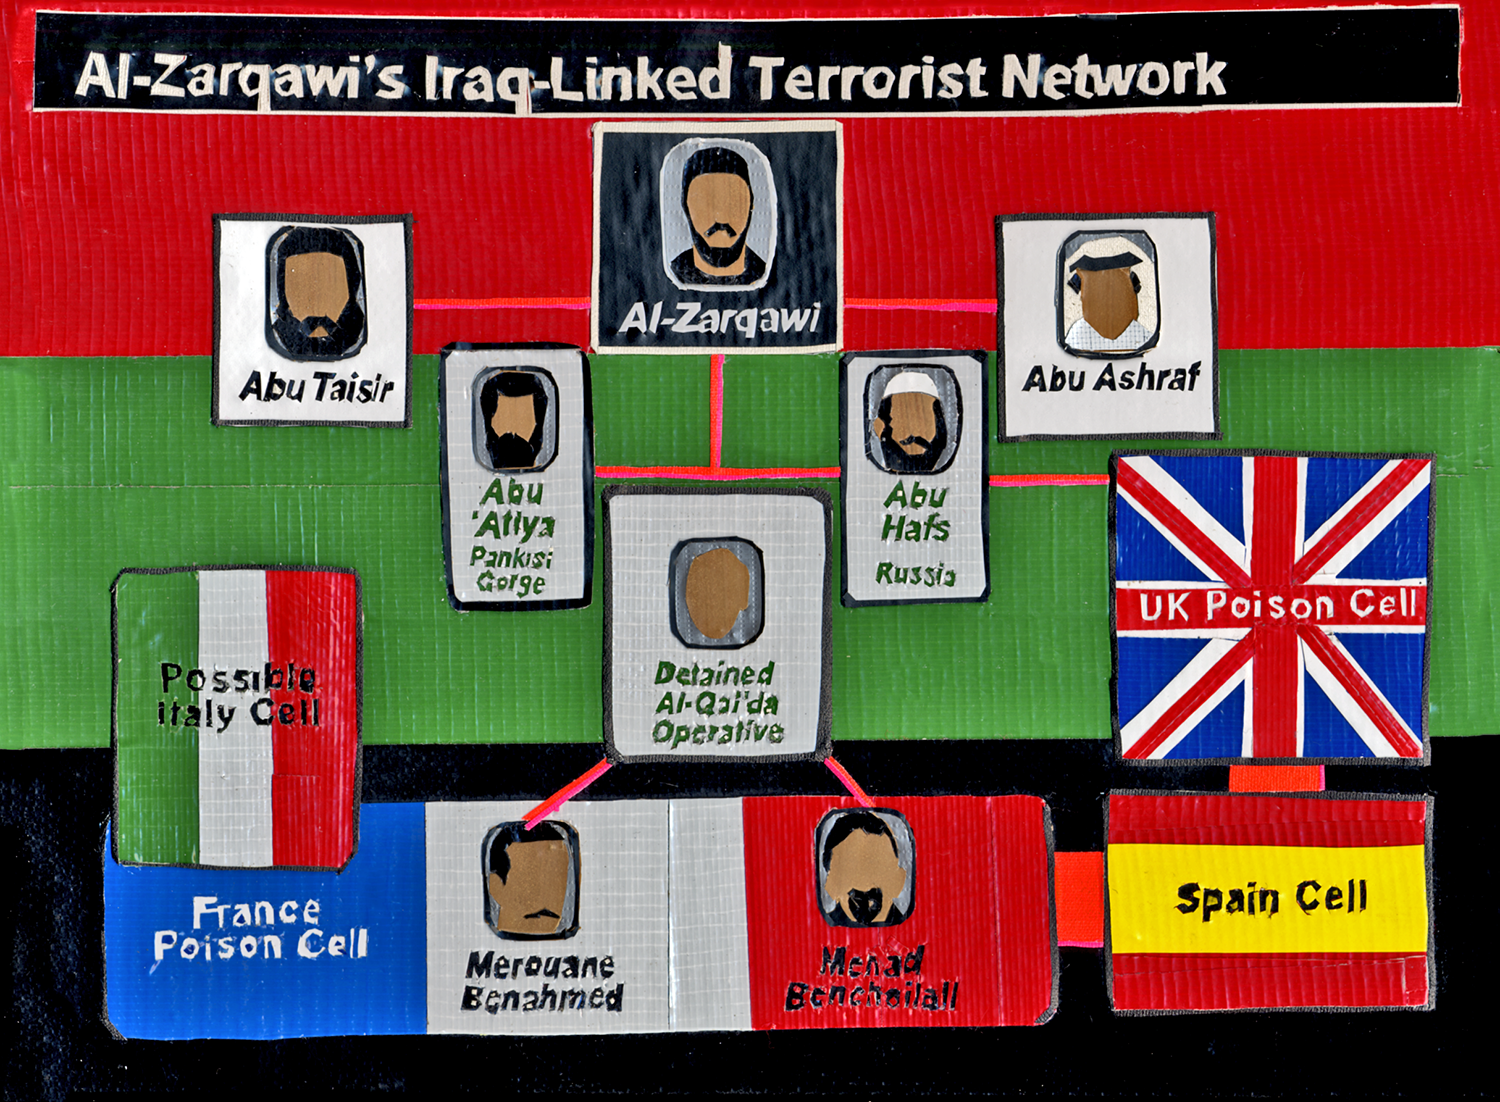 SOUTH OF 7th HEAVEN: Terrorist Network Graphic, furnished by the Associated Press